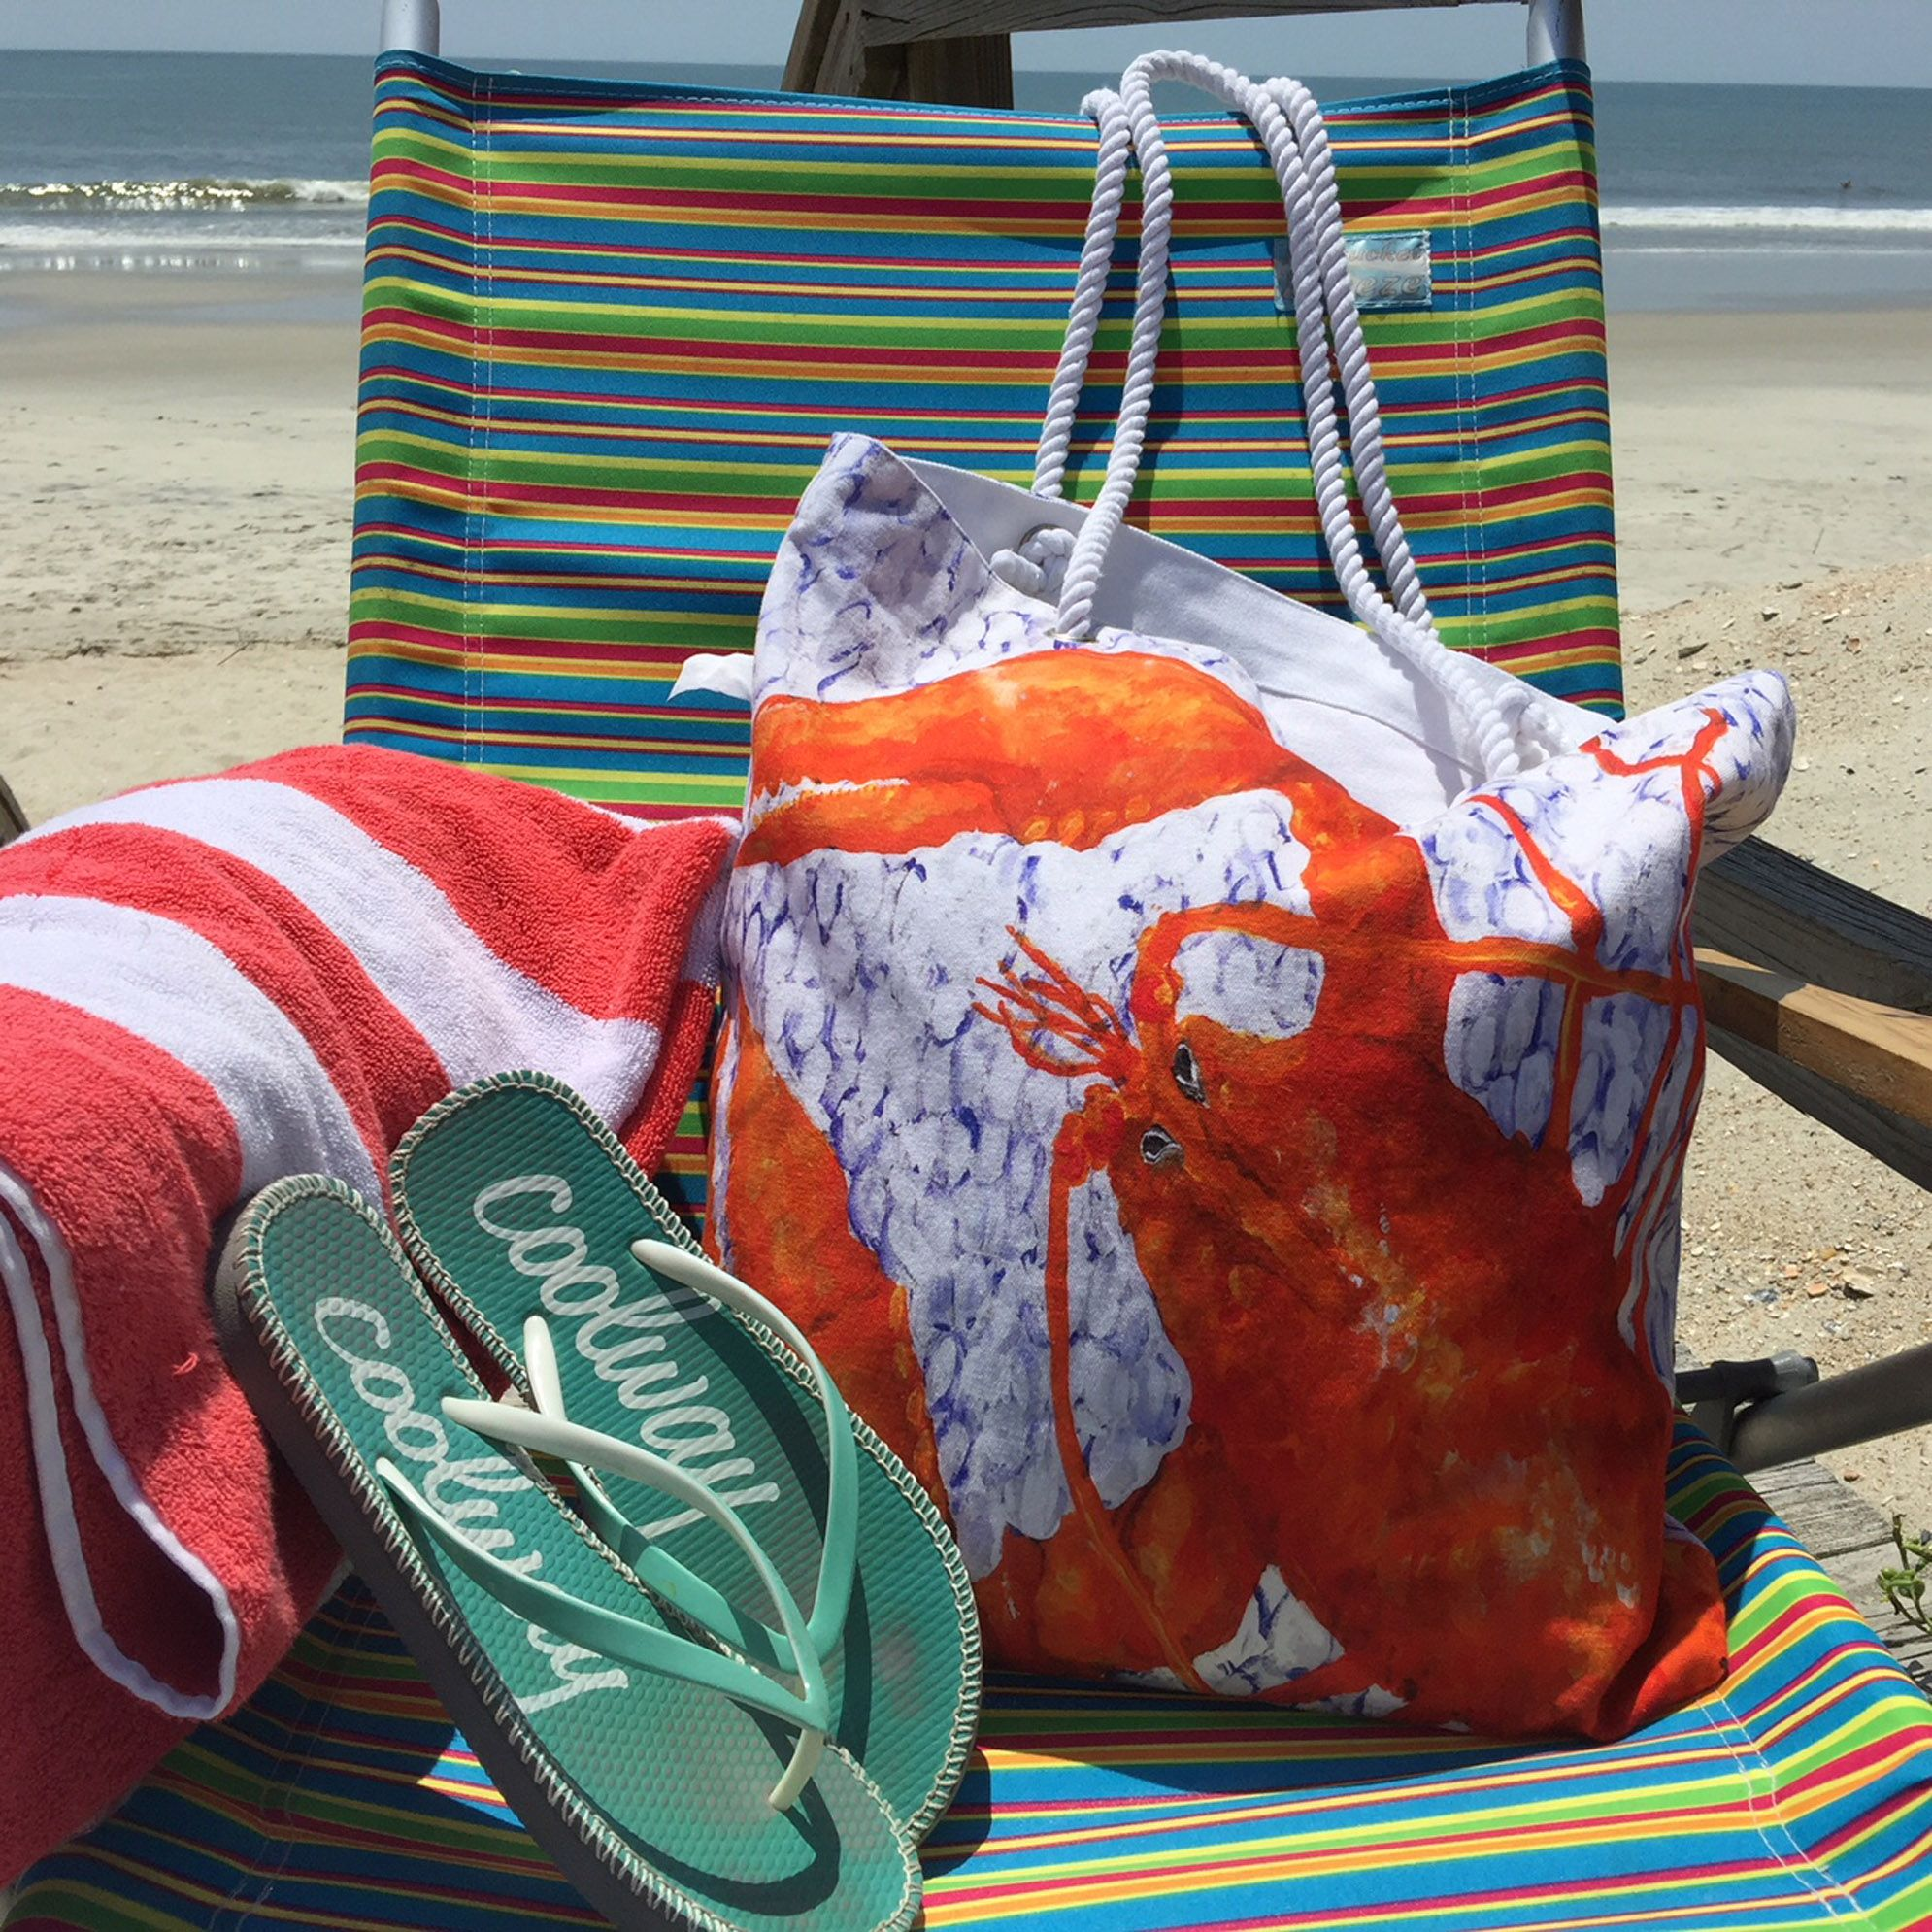 Lobster tote is great as beach bag or carry all etsy